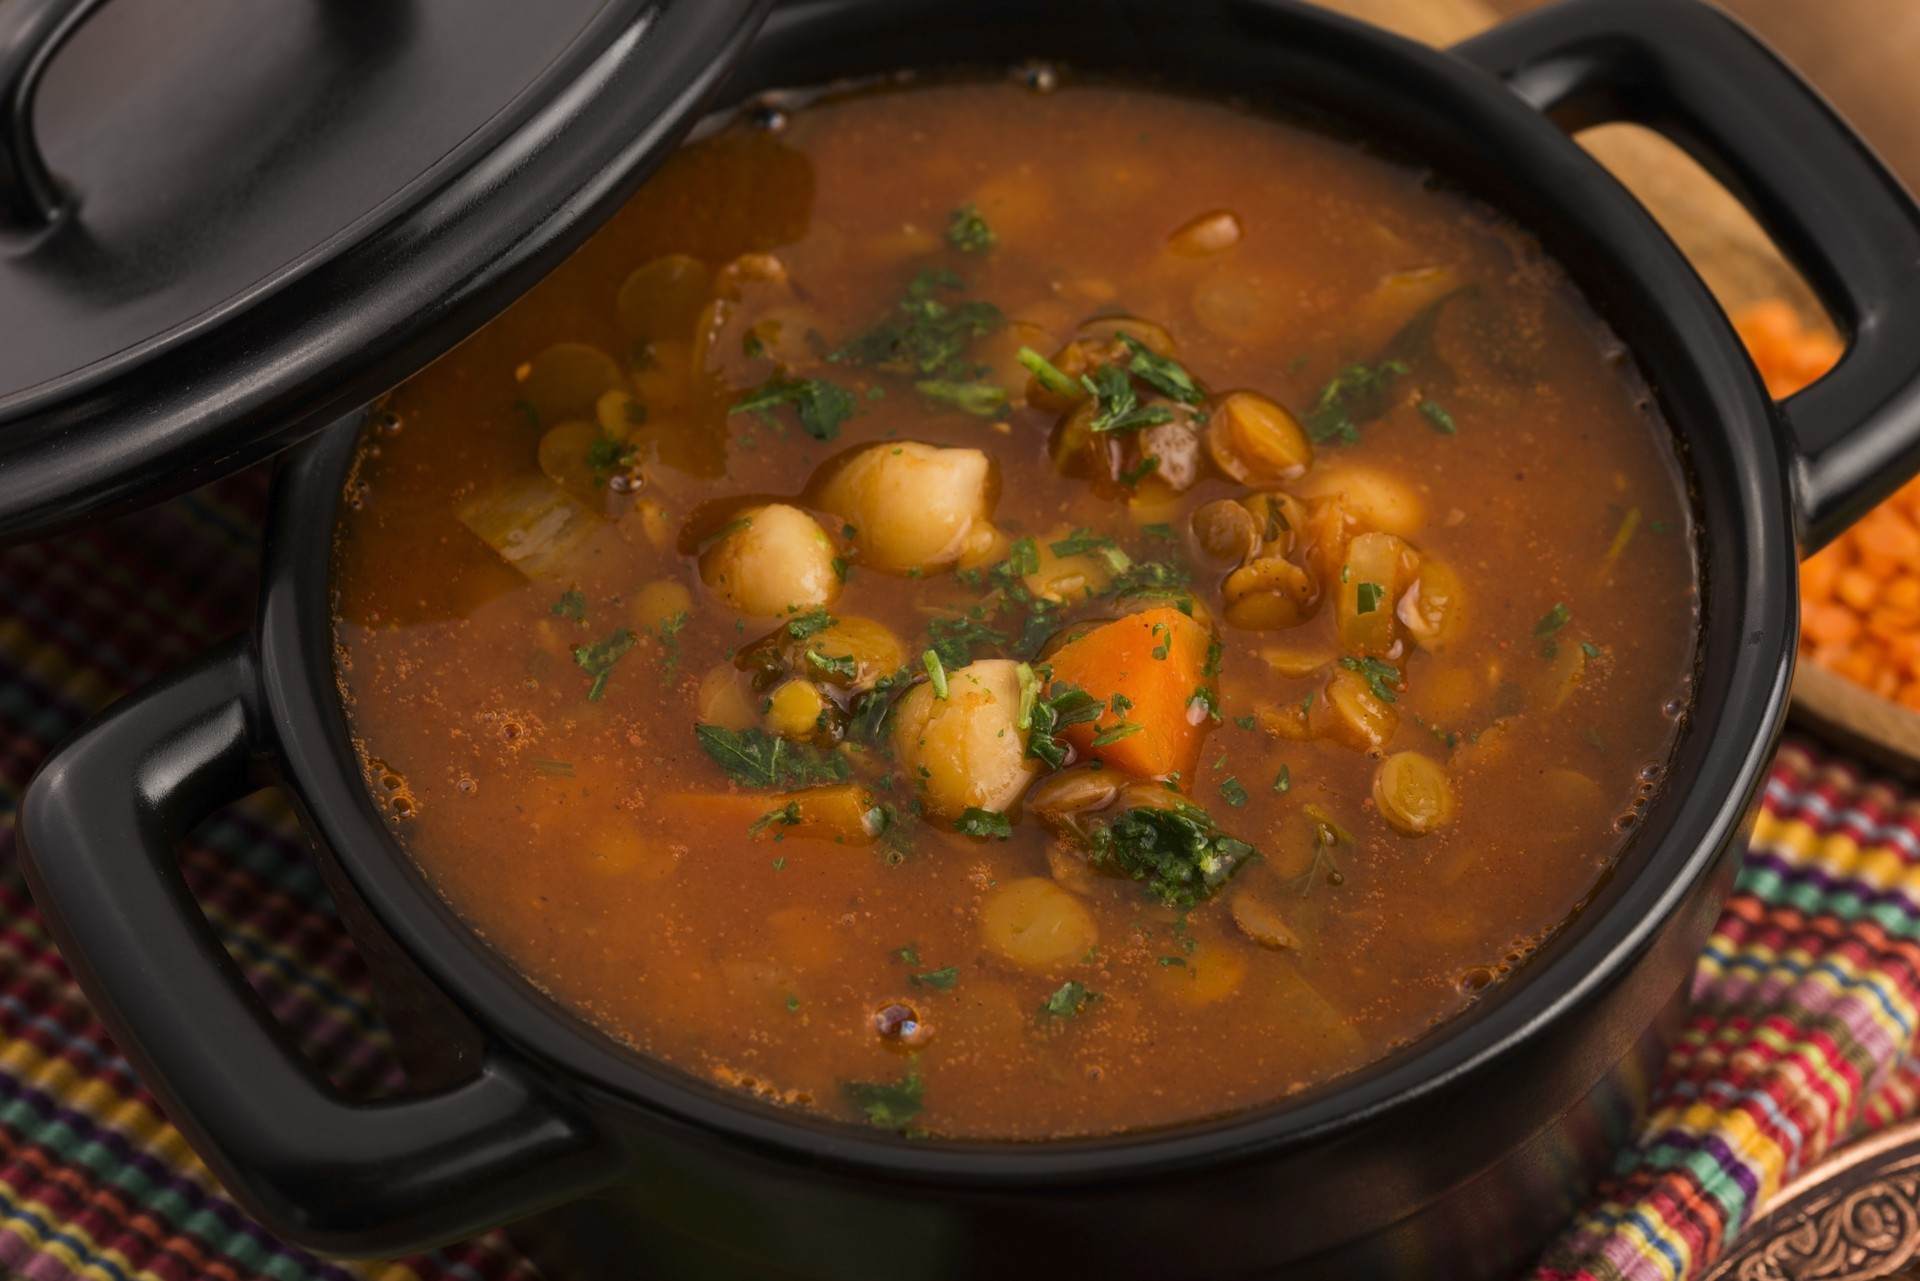 Harira is a traditional Moroccan soup made from meat, tomatoes and chickpeas